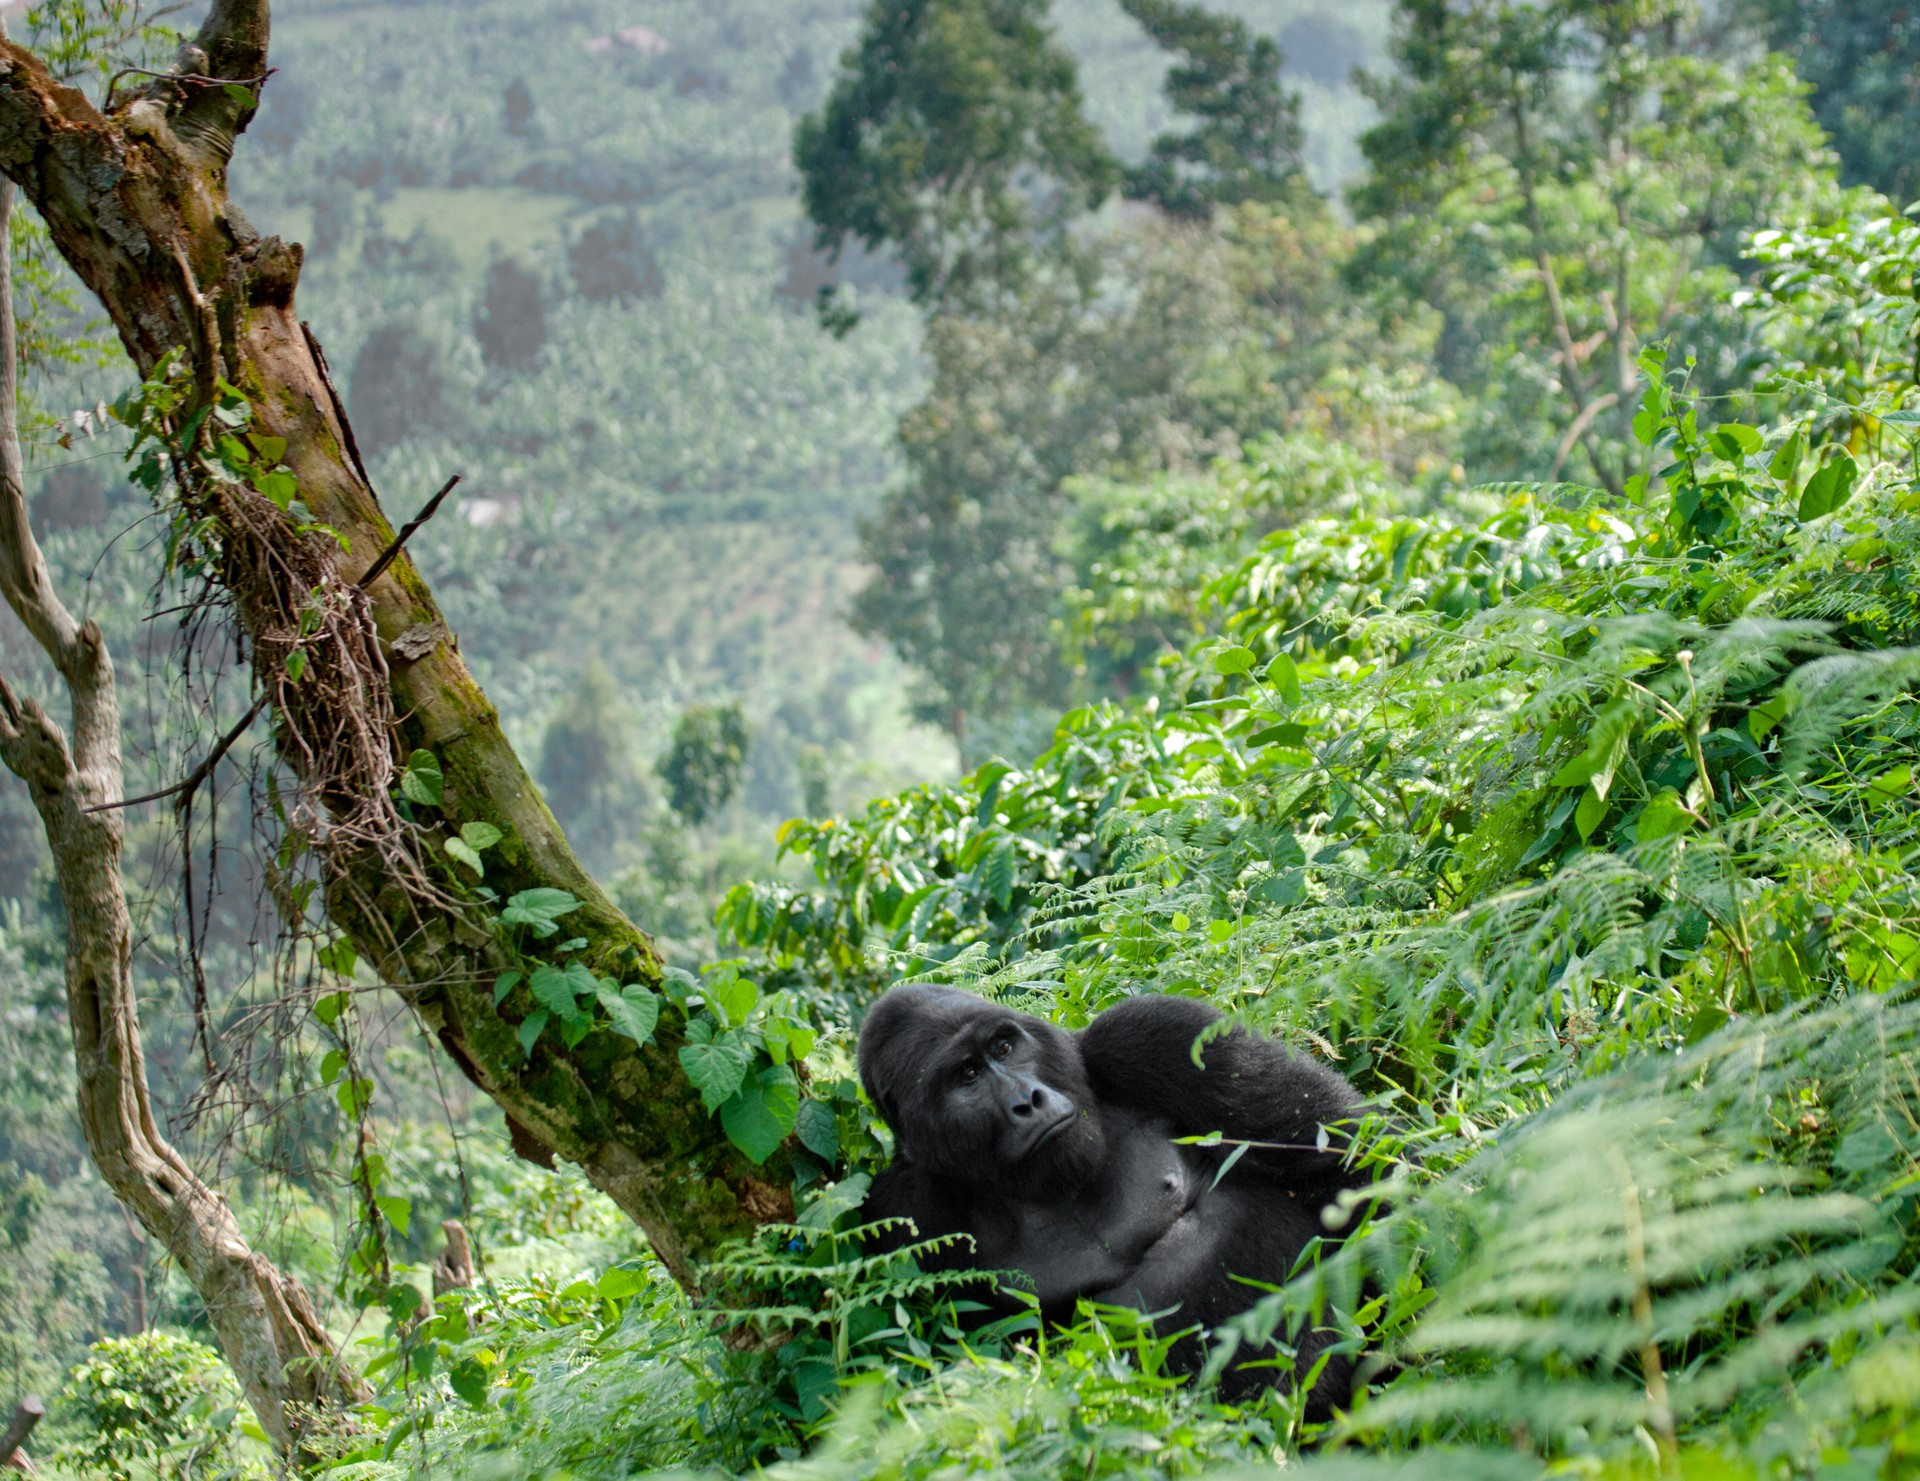 Silverback gorilla in Virunga Mountains, Rwanda